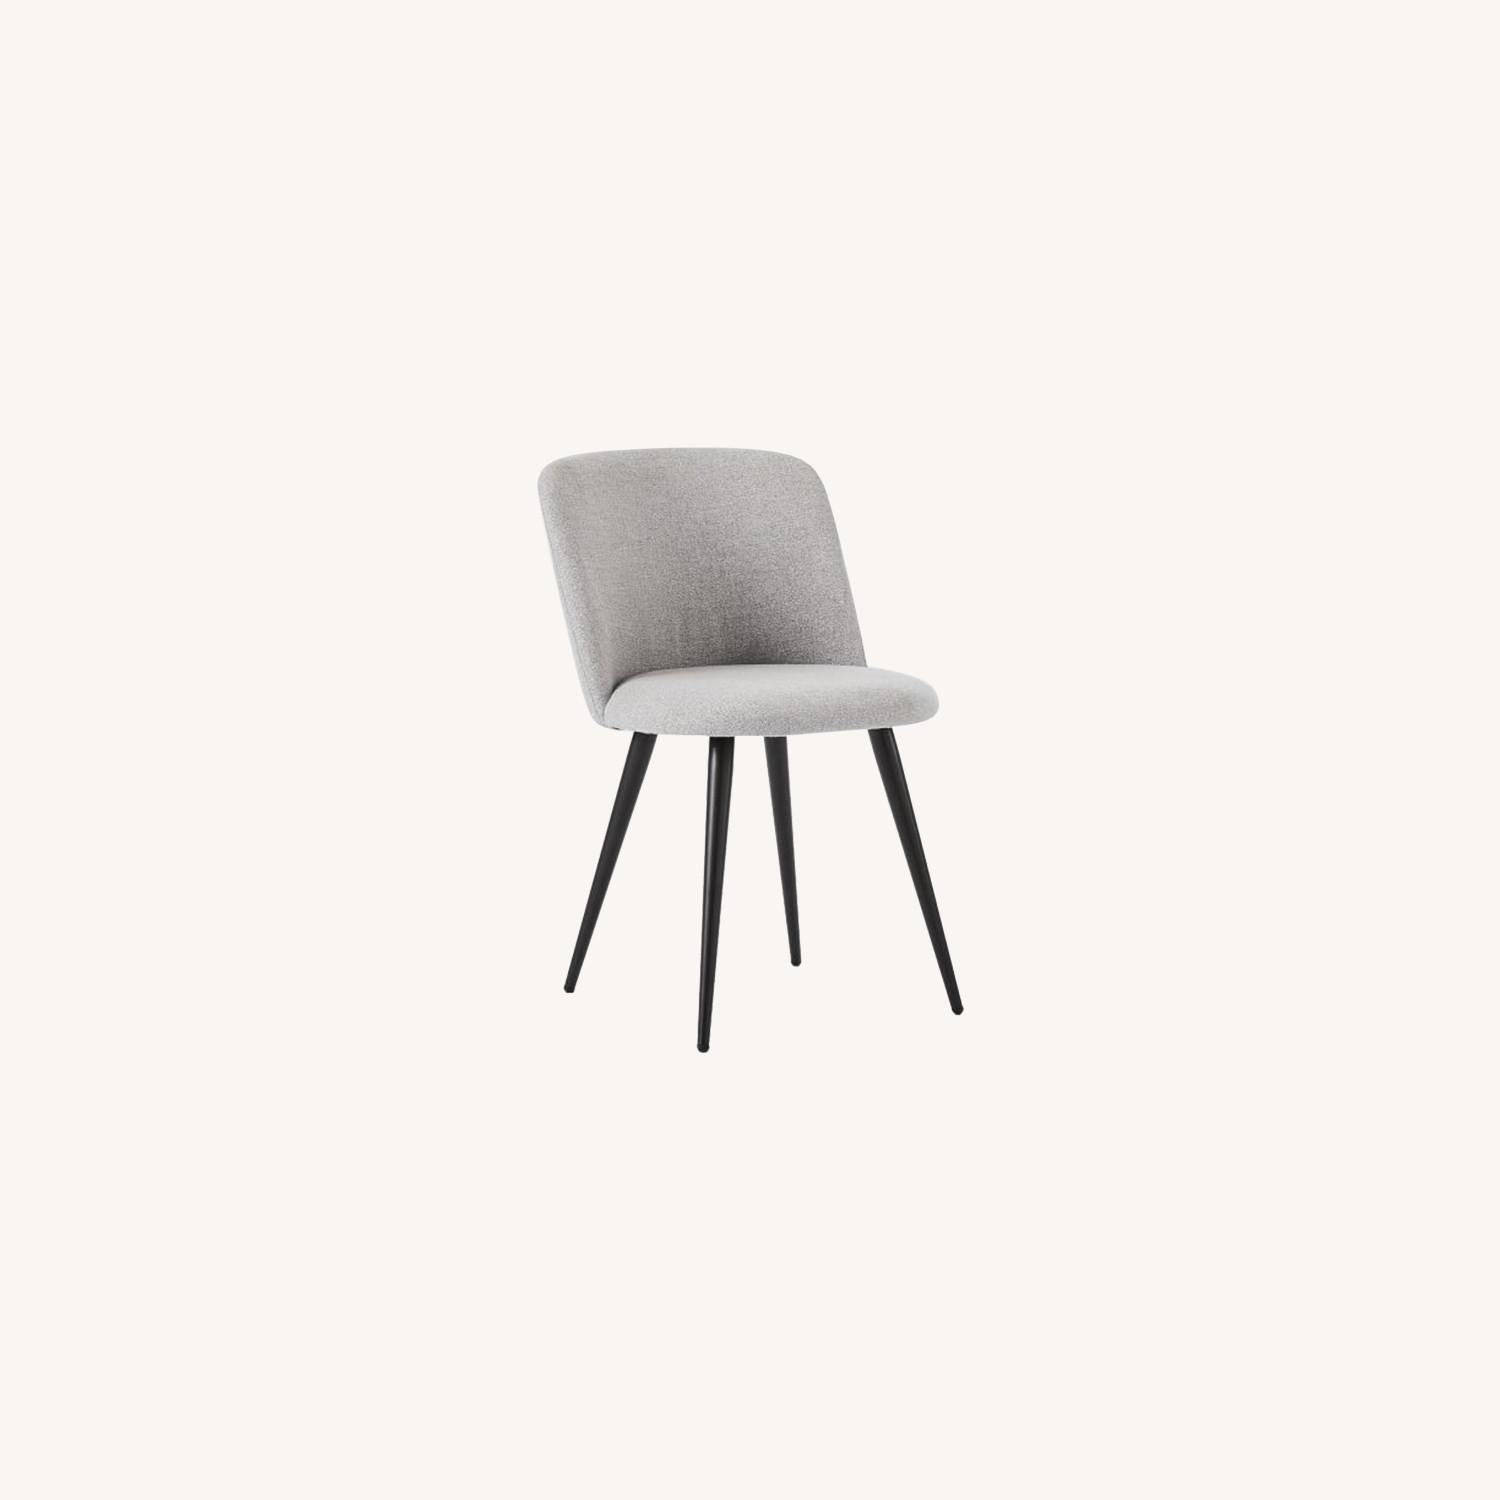 West Elm Lila Upholstered Dining Chair - image-0